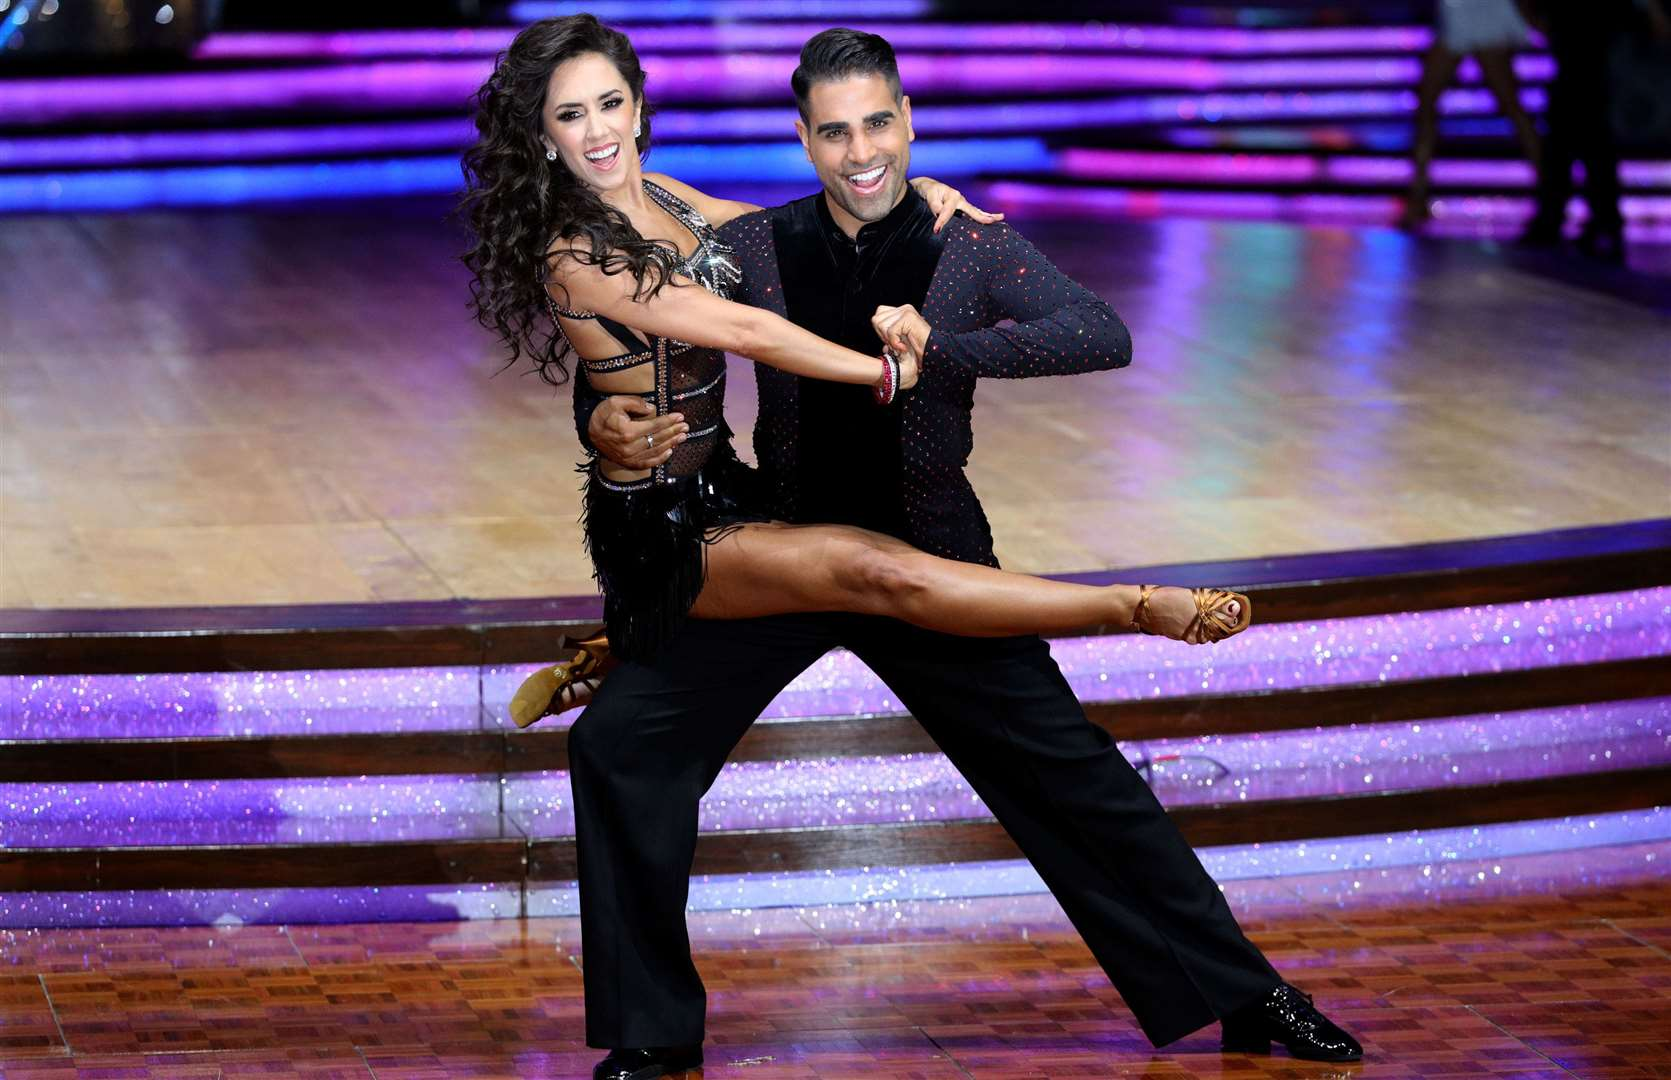 Dr Ranj Singh and Janette Manrara on the Strictly Come Dancing Tour Picture:Aaron Chown